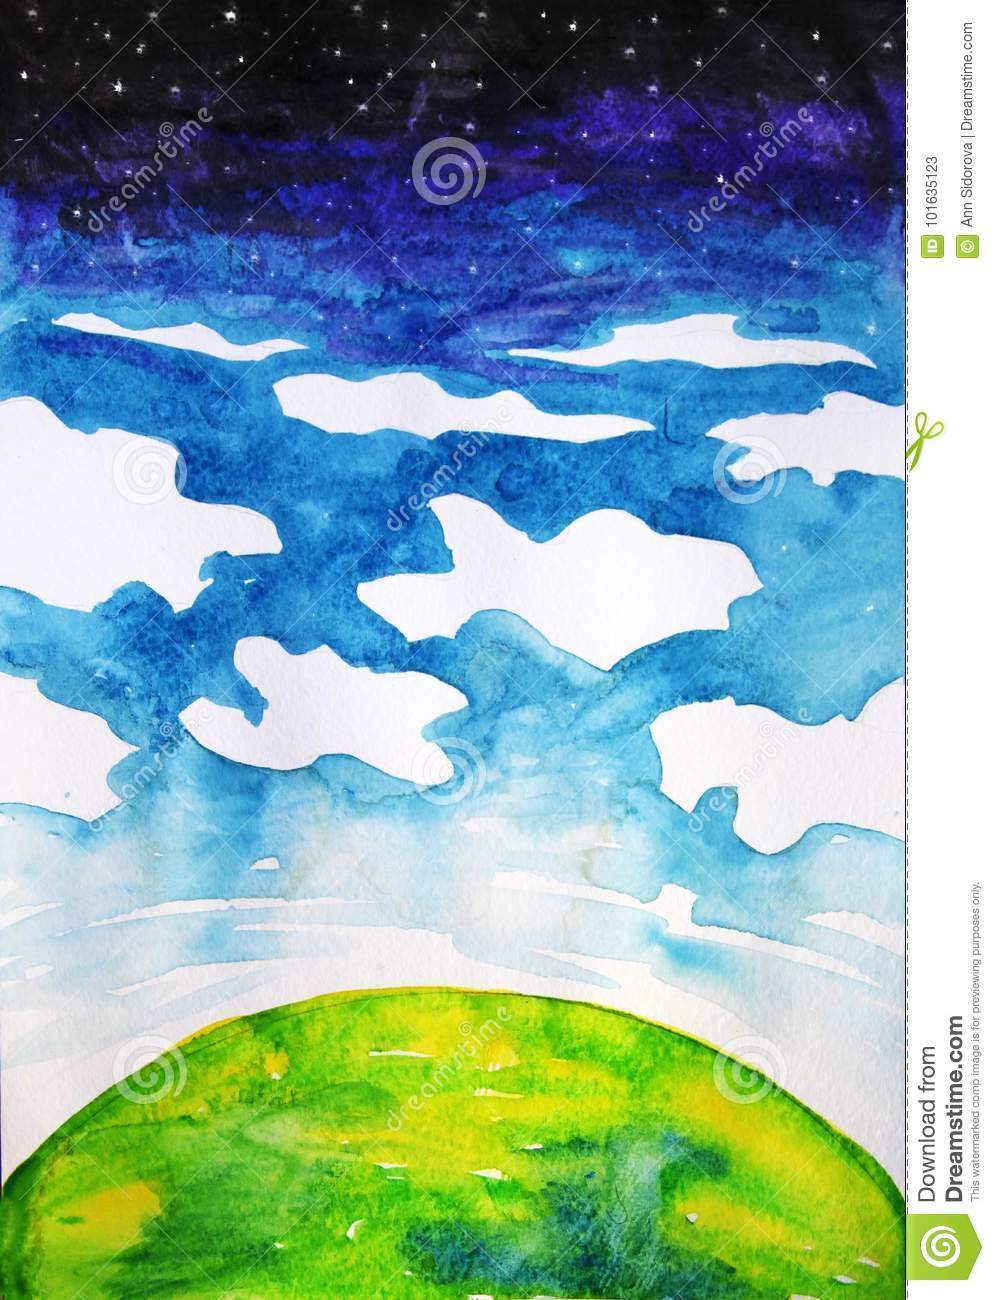 Watercolor Cartoon Drawing Of The Planet Clouds And Space Stock